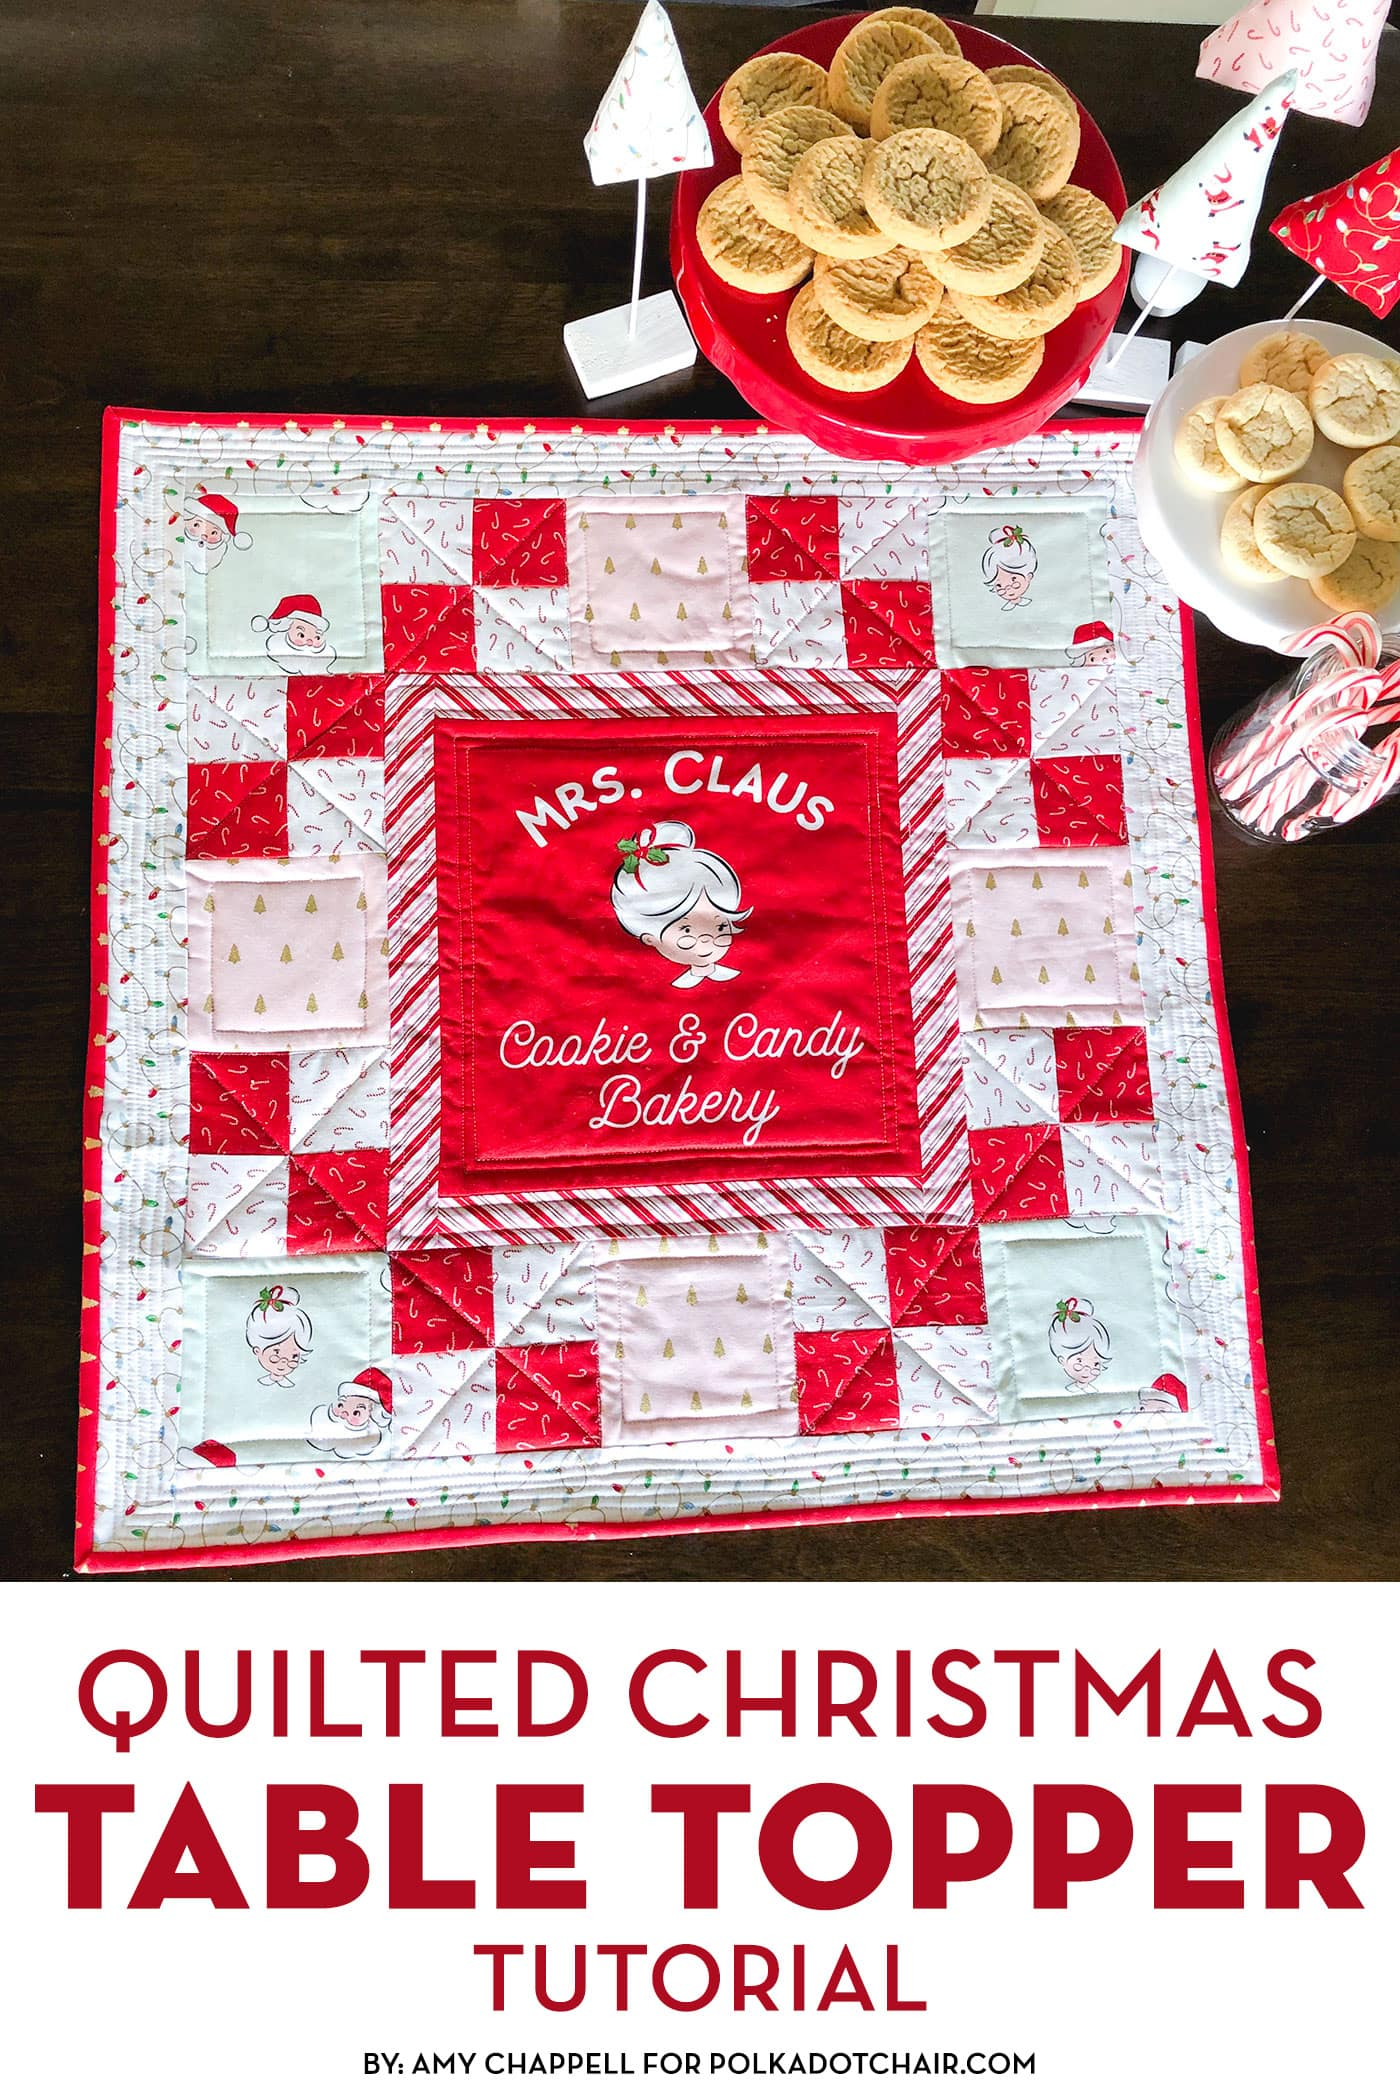 Mrs. Claus Christmas Table Topper Pattern